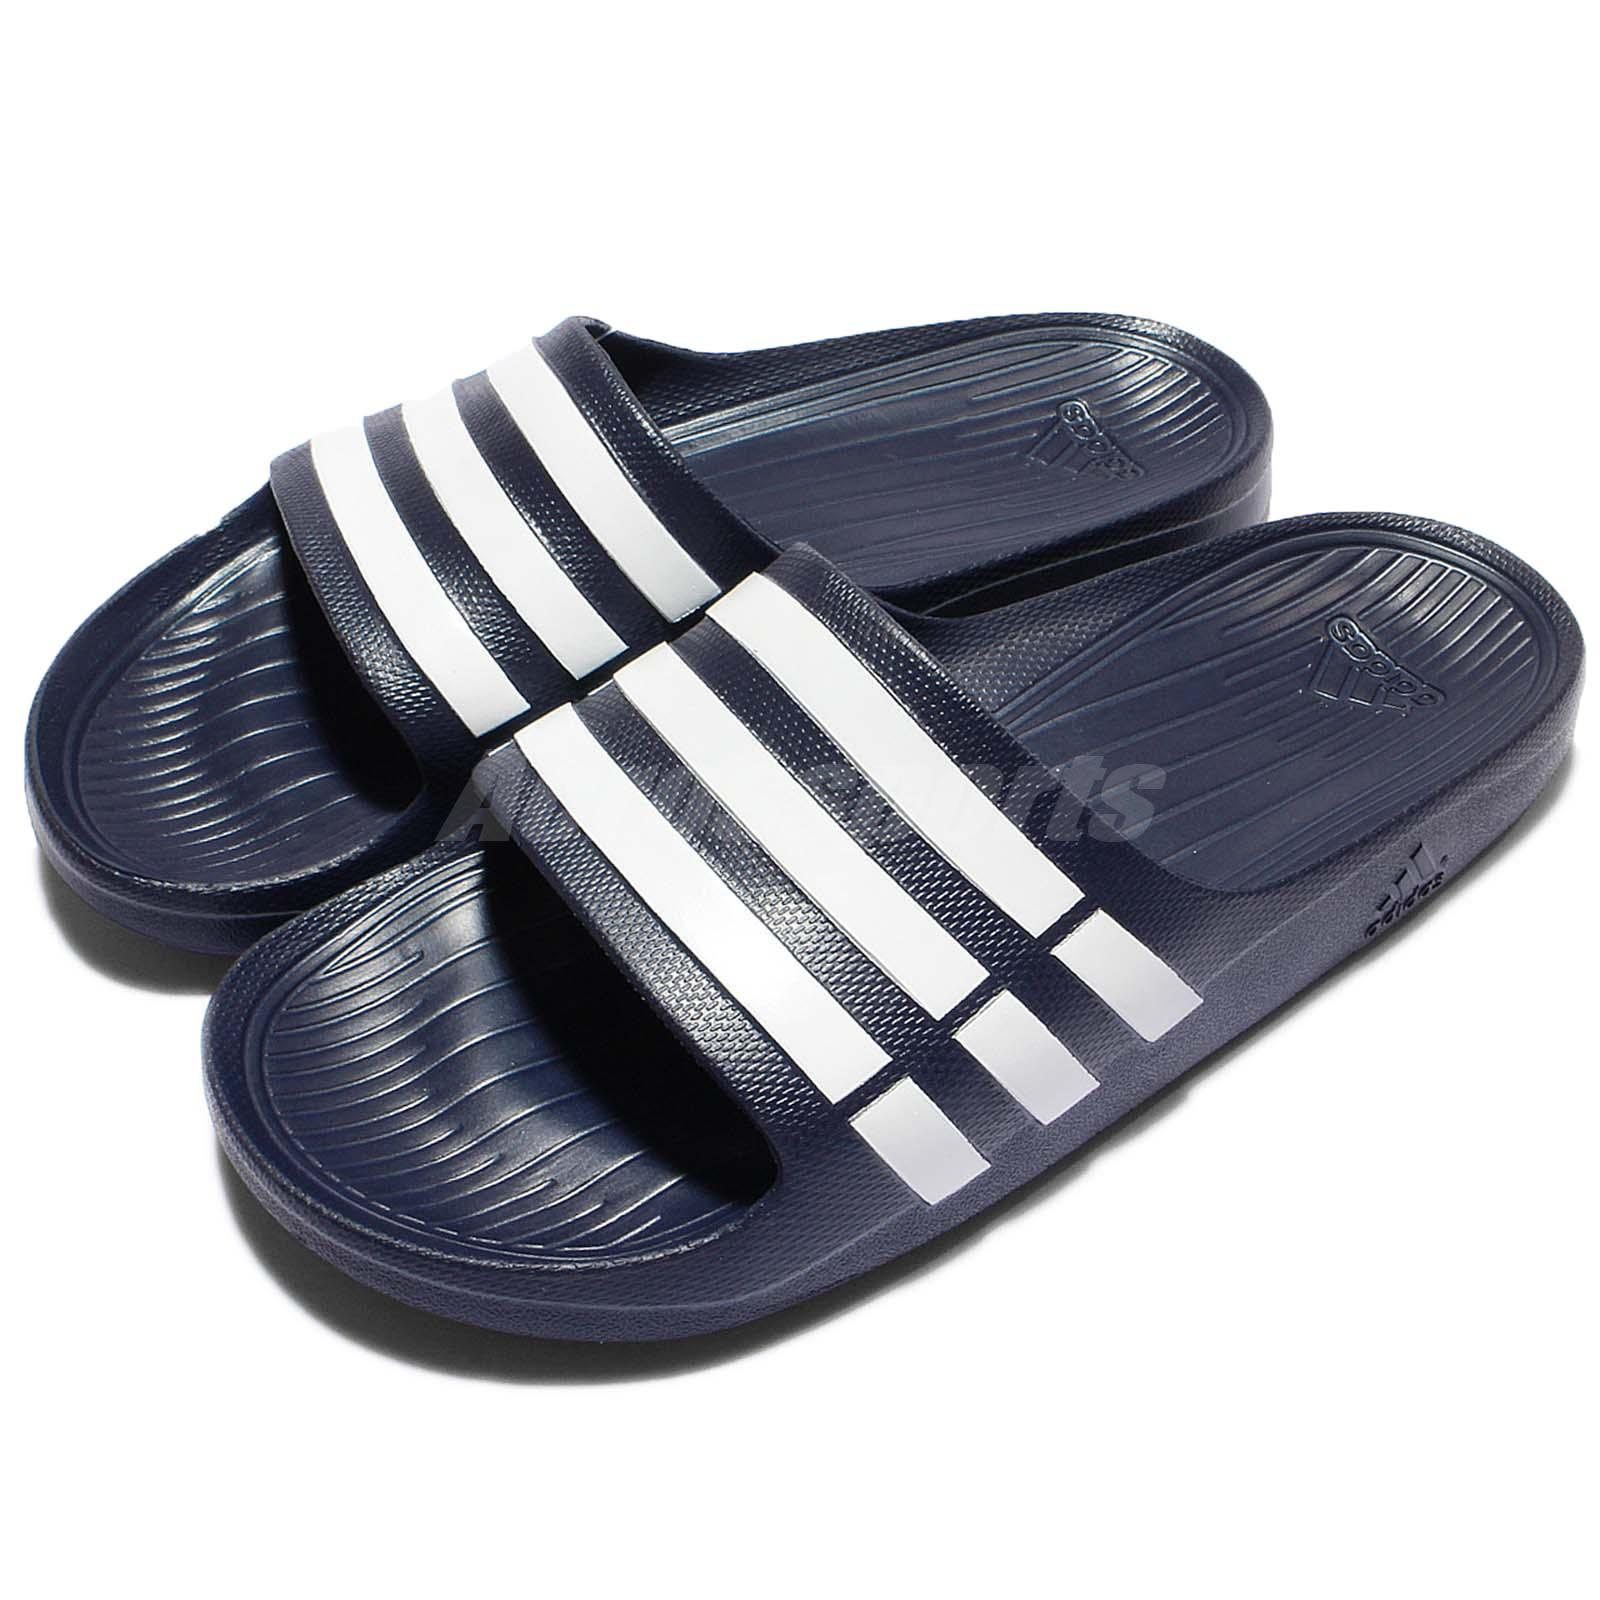 a7eb8b5019d9 Details about adidas Duramo Slide Navy White Mens Womens Sports Slide  Slippers Sandals G15892